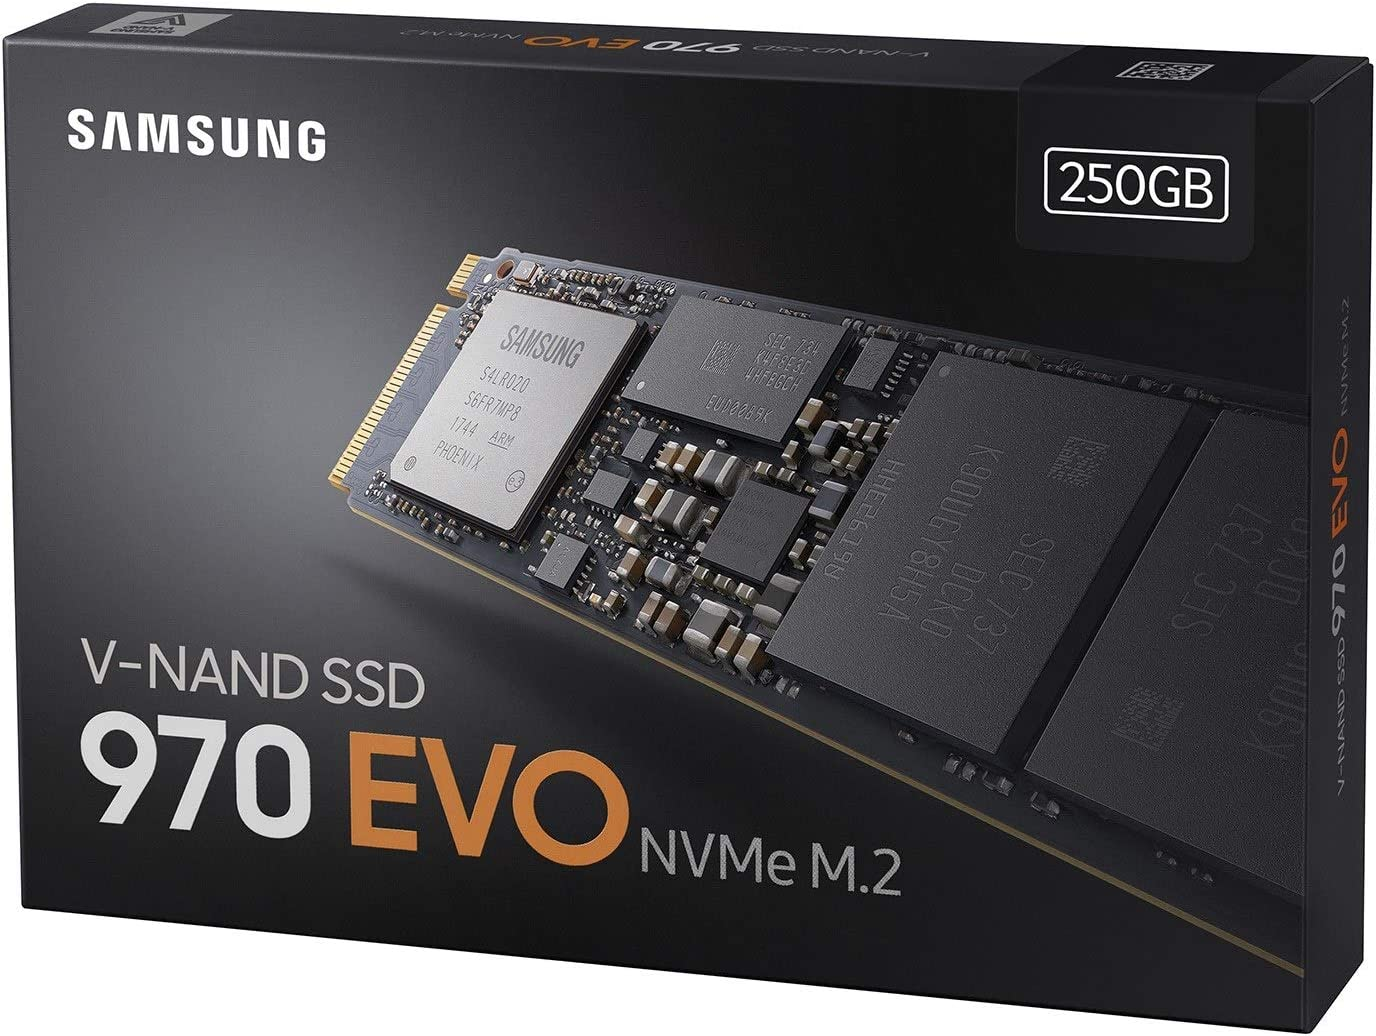 HD SSD SAMSUNG 250GB 970 EVO Plus M.2 PCI Express 3.0 V-NAND MLC ...